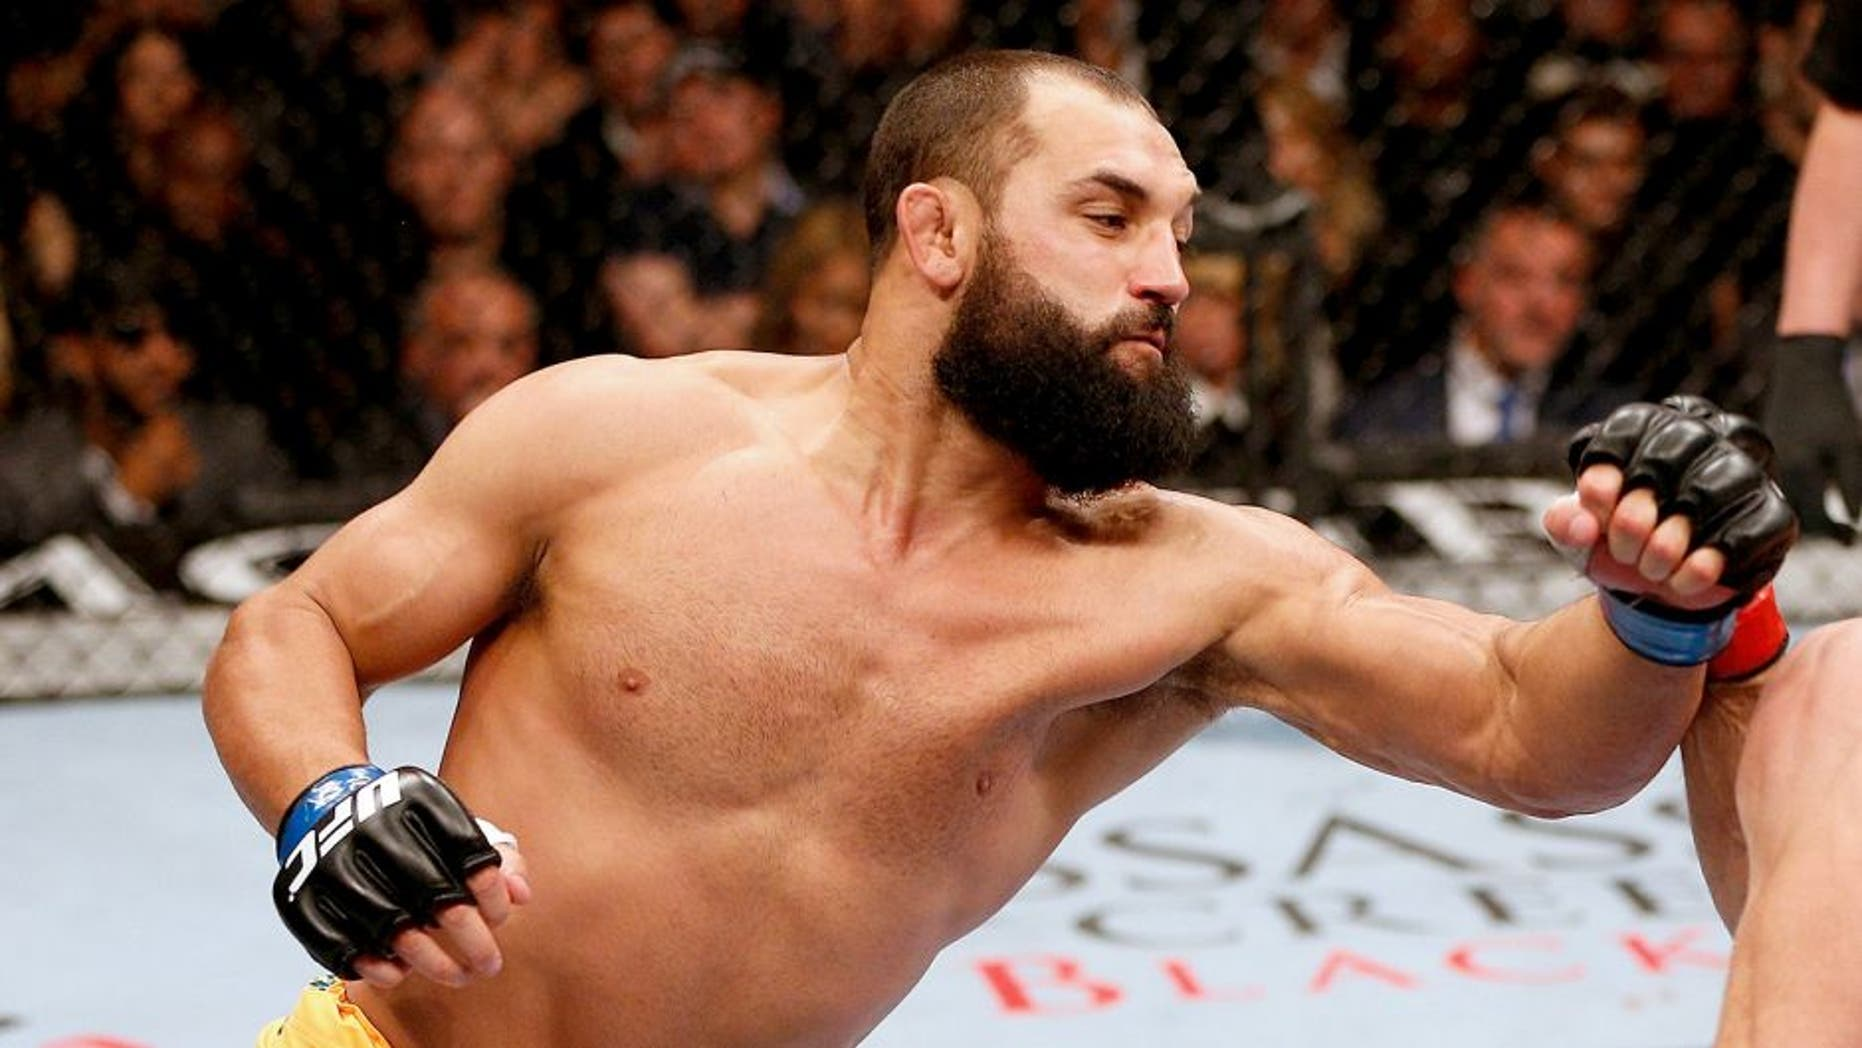 LAS VEGAS, NV - NOVEMBER 16: (L-R) Johny Hendricks punches Georges St-Pierre in their UFC welterweight championship bout during the UFC 167 event inside the MGM Grand Garden Arena on November 16, 2013 in Las Vegas, Nevada. (Photo by Josh Hedges/Zuffa LLC/Zuffa LLC via Getty Images)